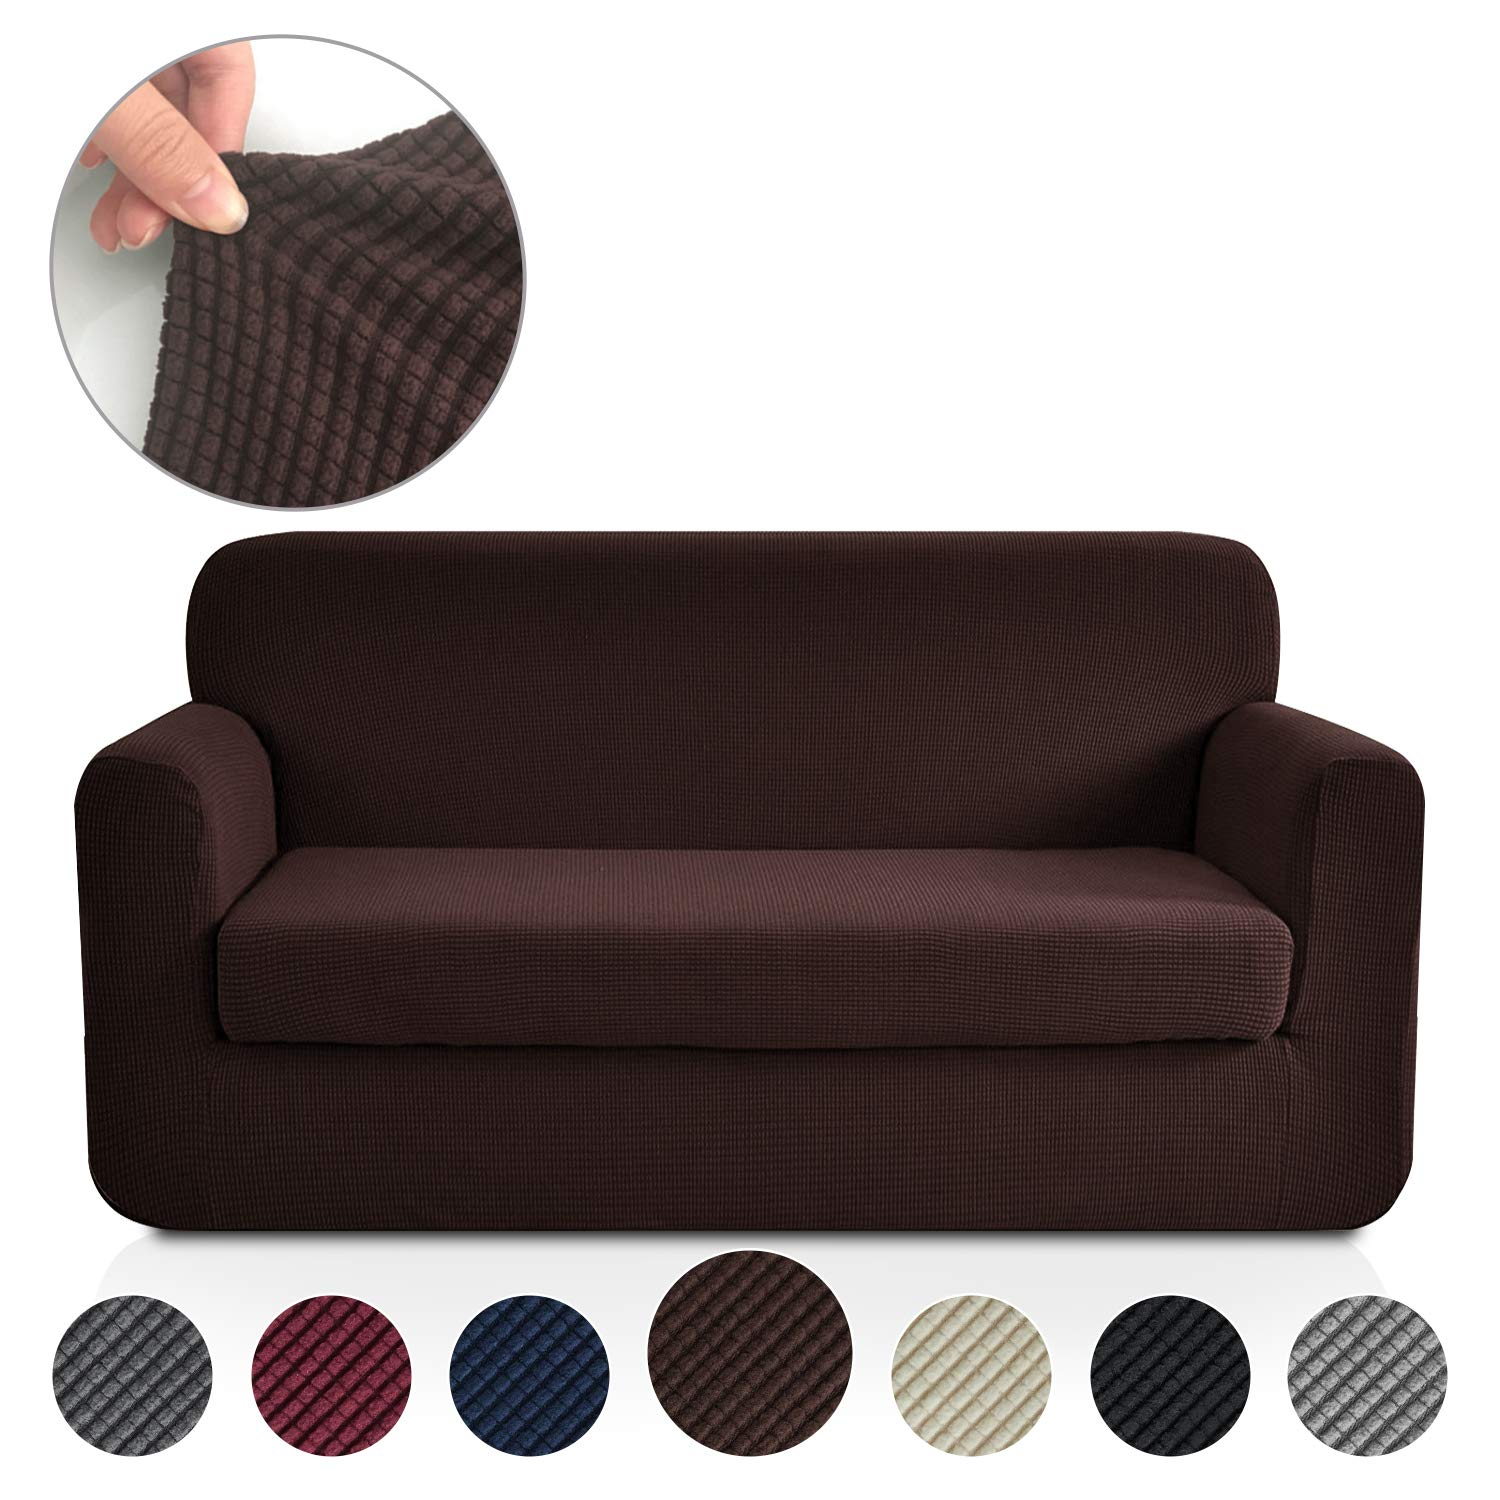 Rose Home Fashion RHF Jacquard Stretch 2-Piece Sofa Cover, 2-Piece Slipcover for Leather Couch-Polyester Spandex Sofa Slipcover&Couch Cover for Dogs, 2-Piece Sofa Protector(Loveseat: Chocolate)